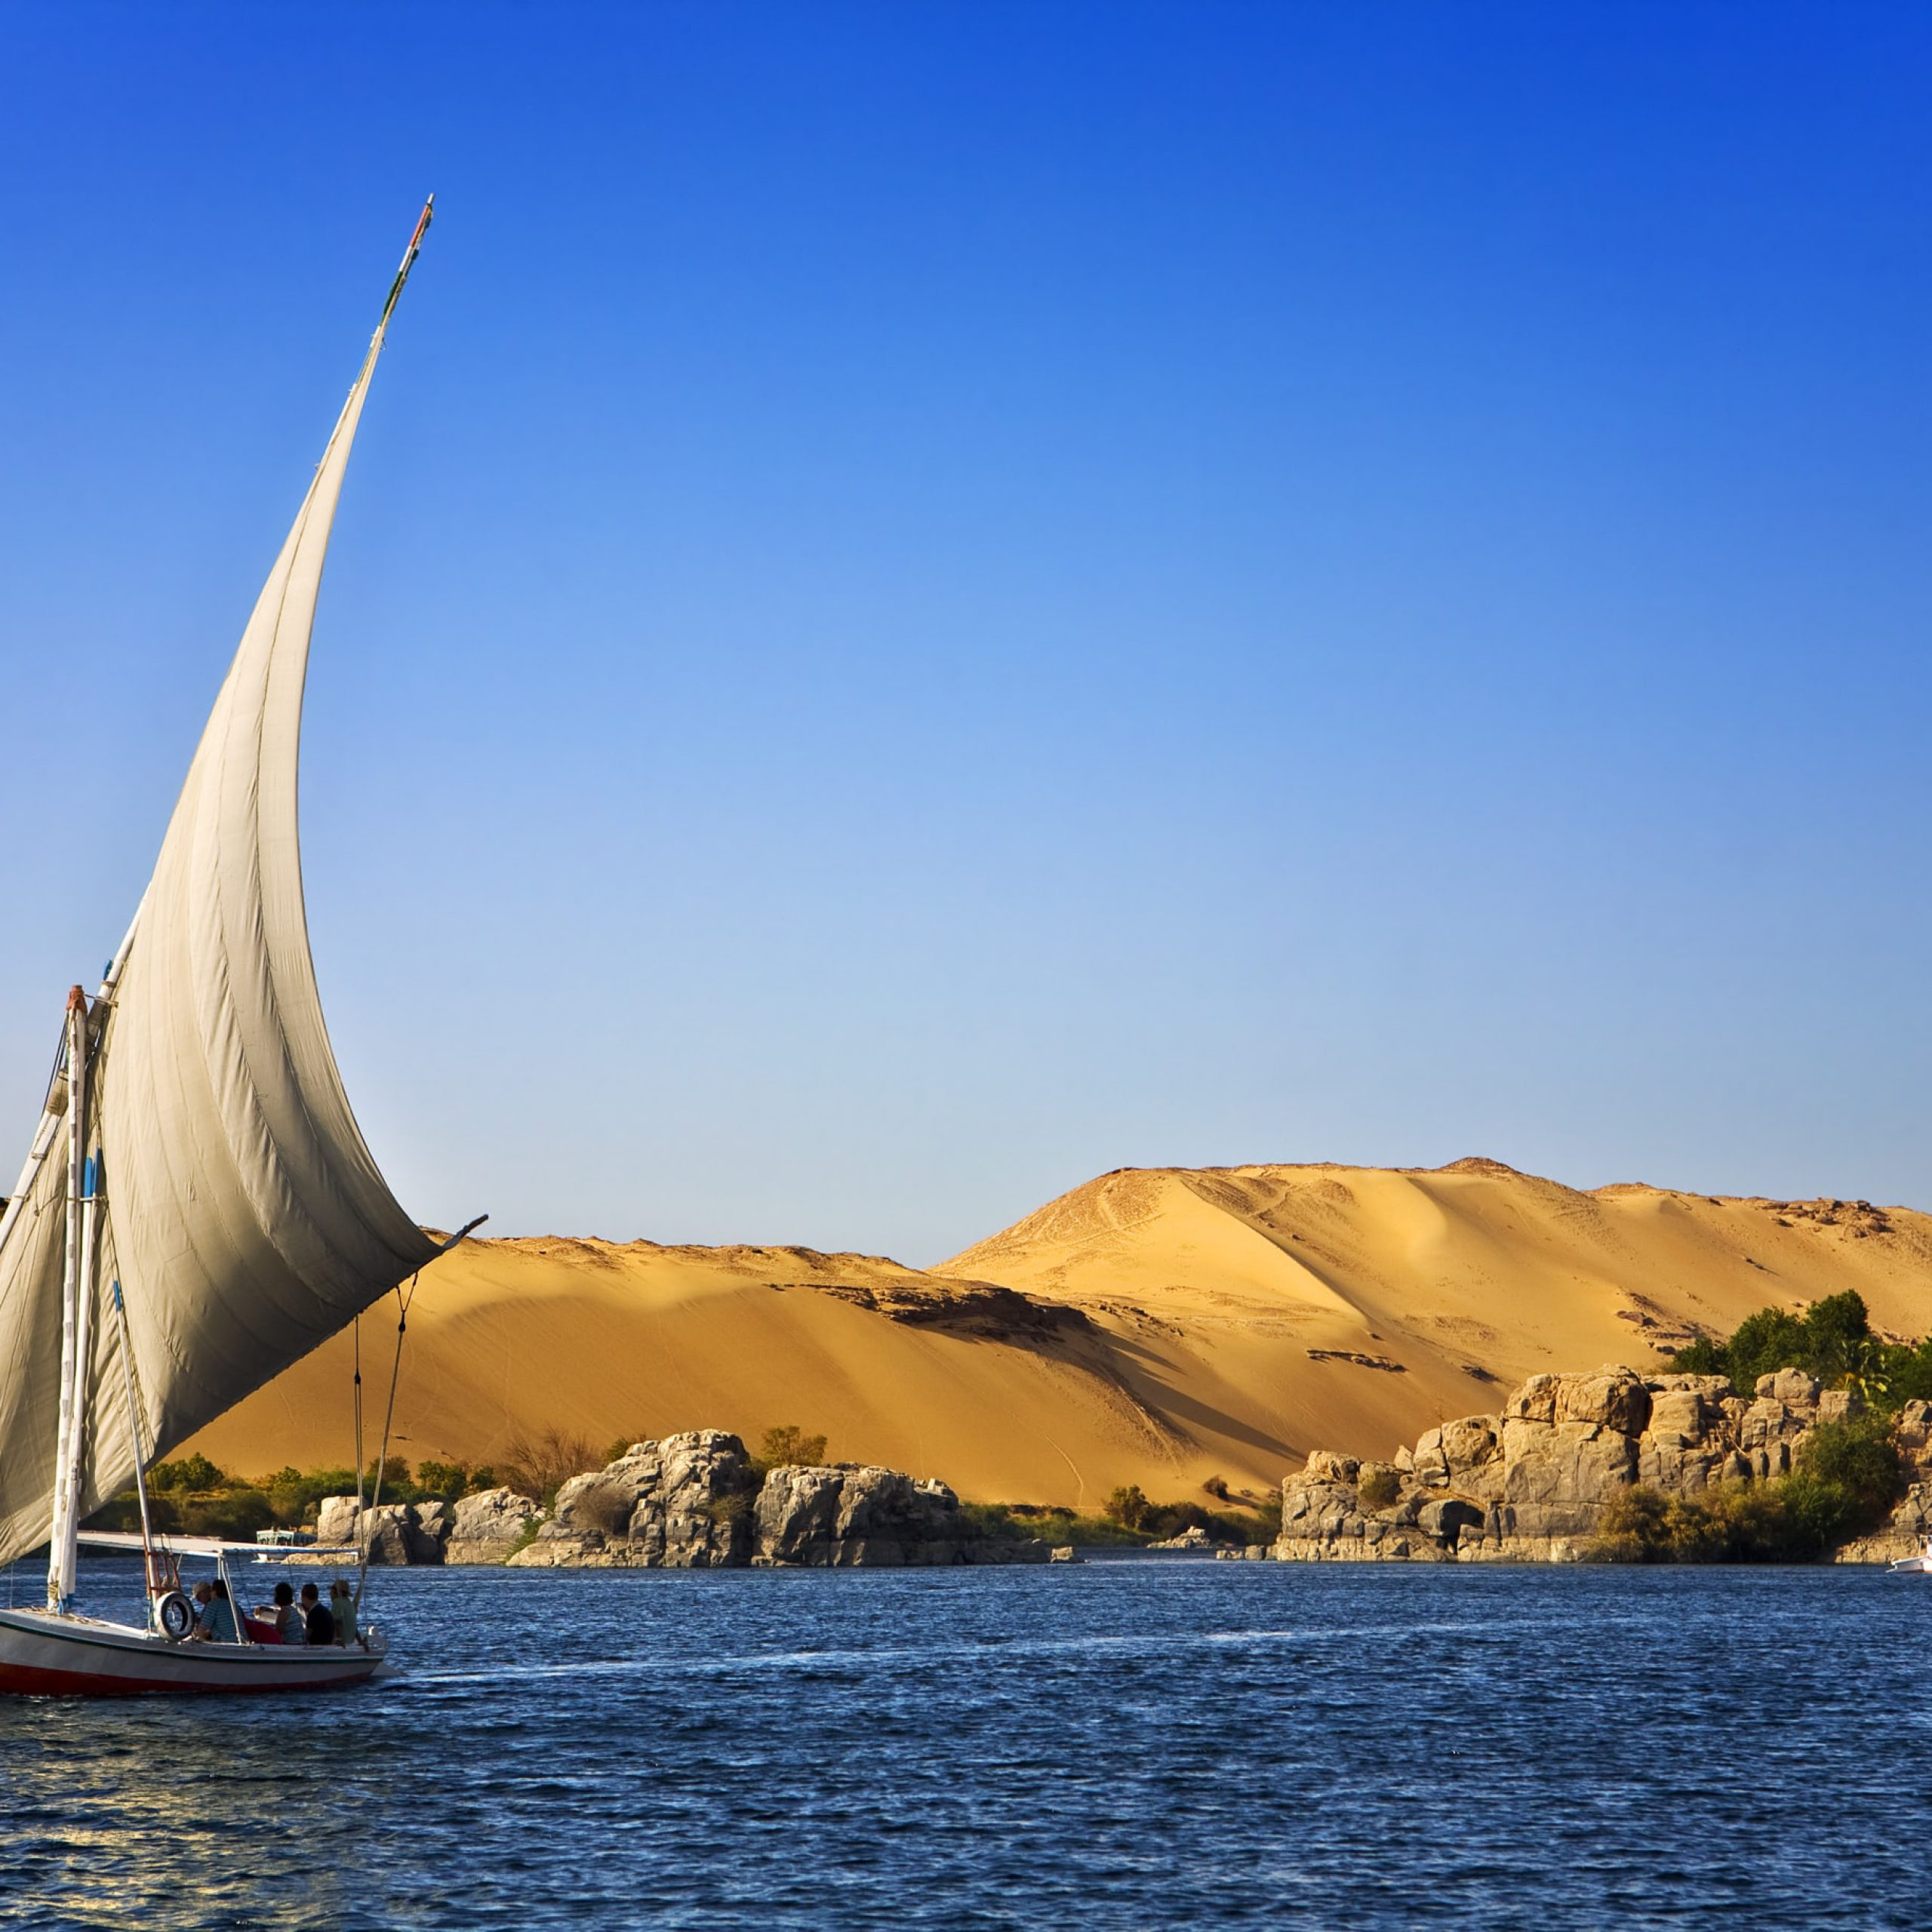 Day 04: Nile Cruise (Start from Aswan Every: Monday, Wednesday & Friday)